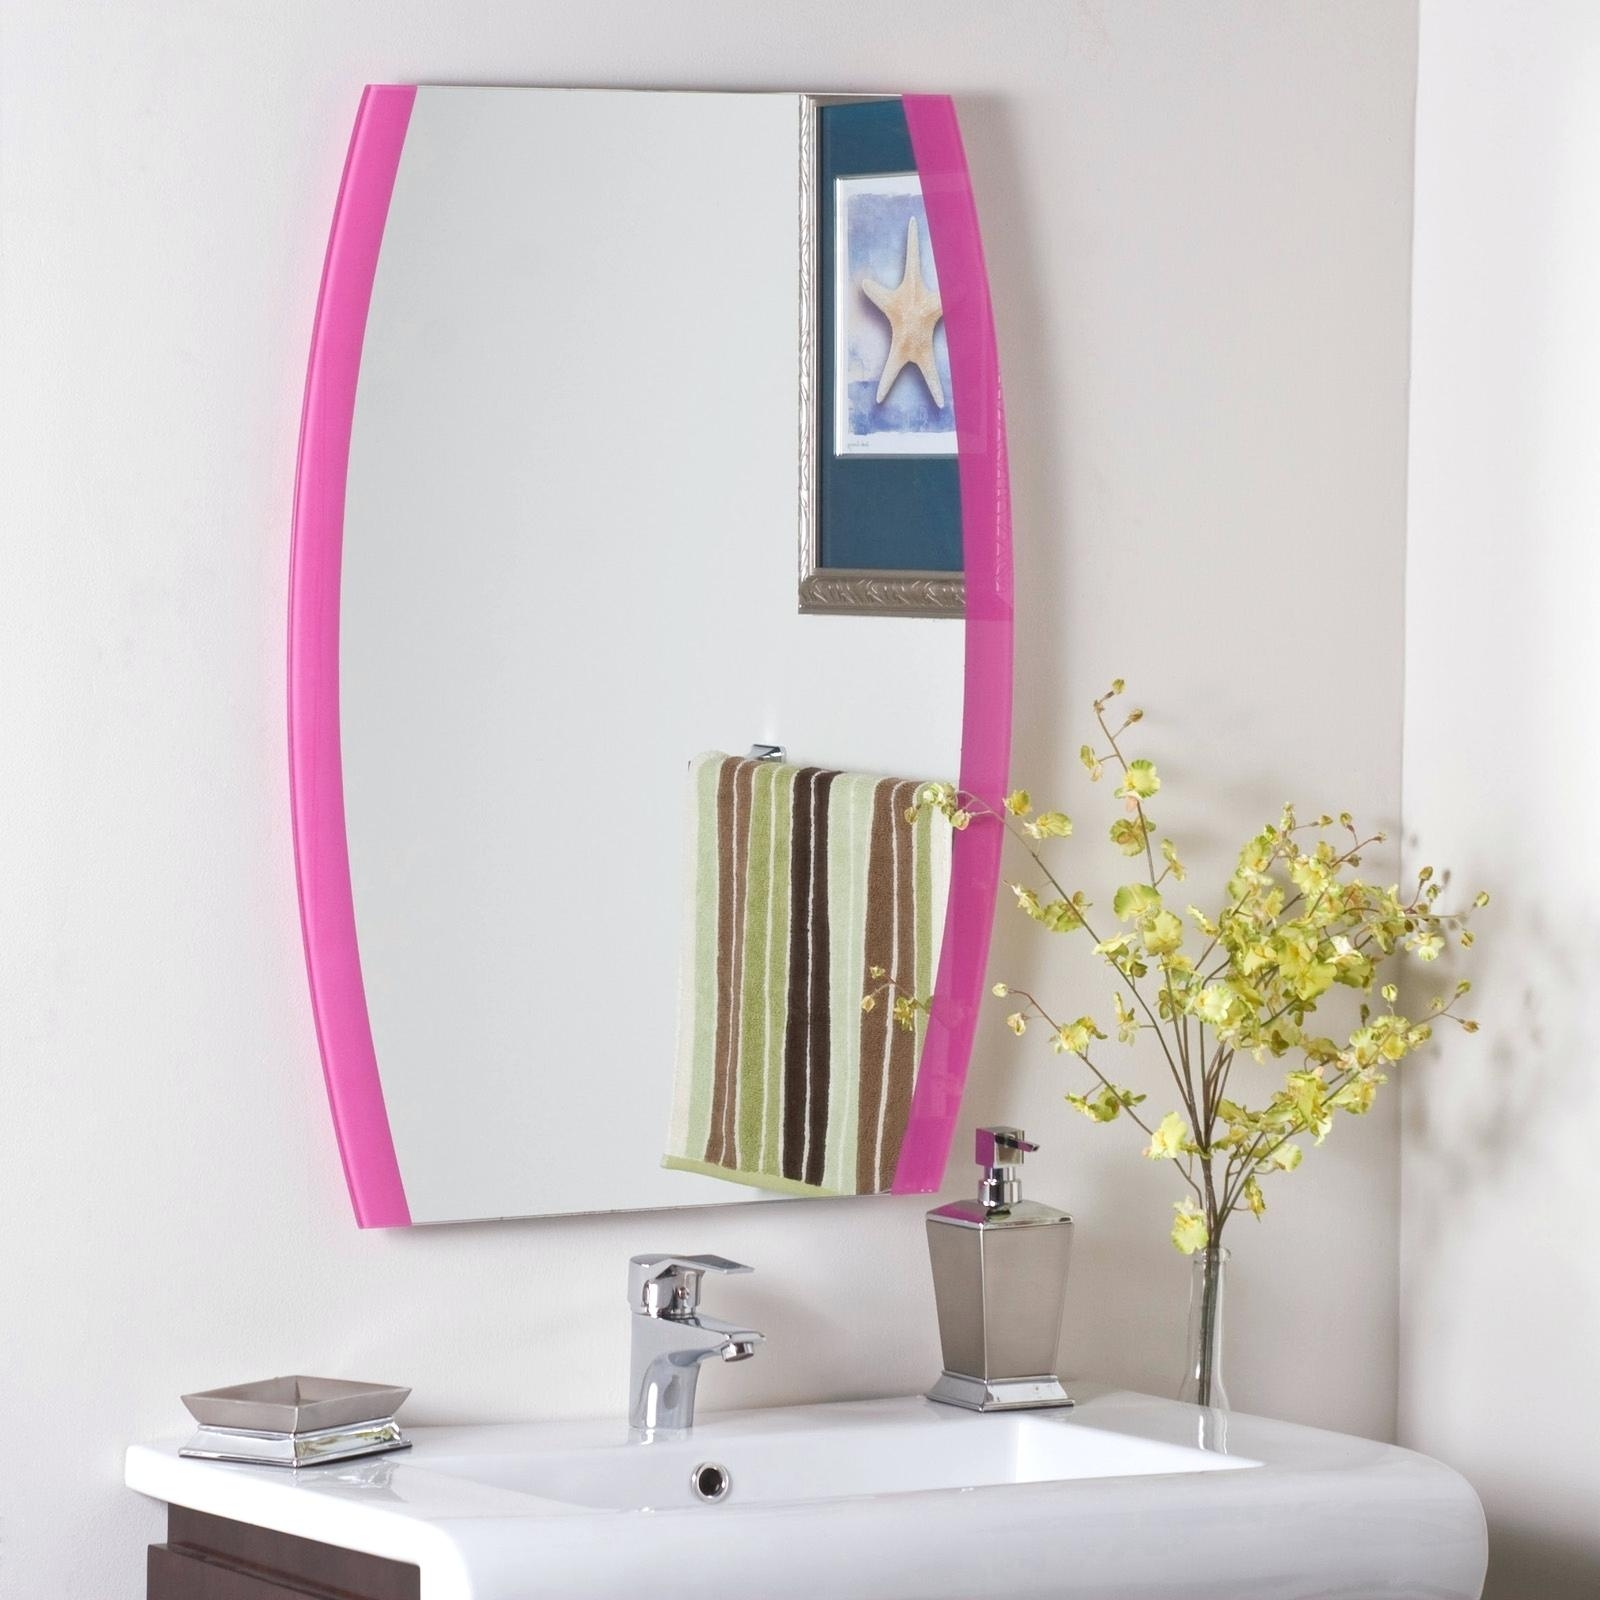 Arched Window Mirror With Shutters Elegant Arts And Frames Pink Pertaining To Wall Mirror With Shutters (Image 3 of 15)